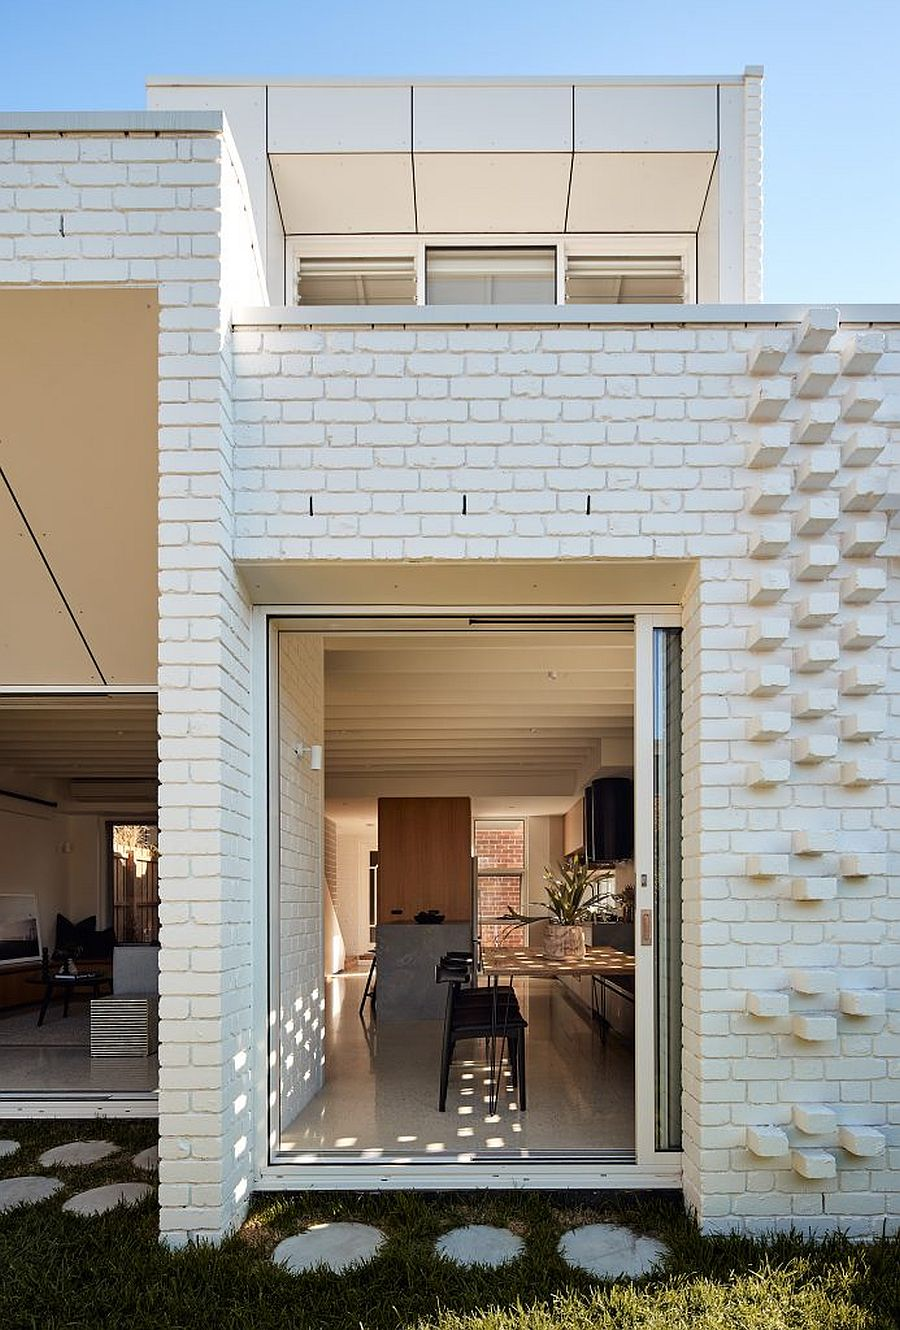 Fabulous new brick extension to Melbourne house with rainwater collecting system